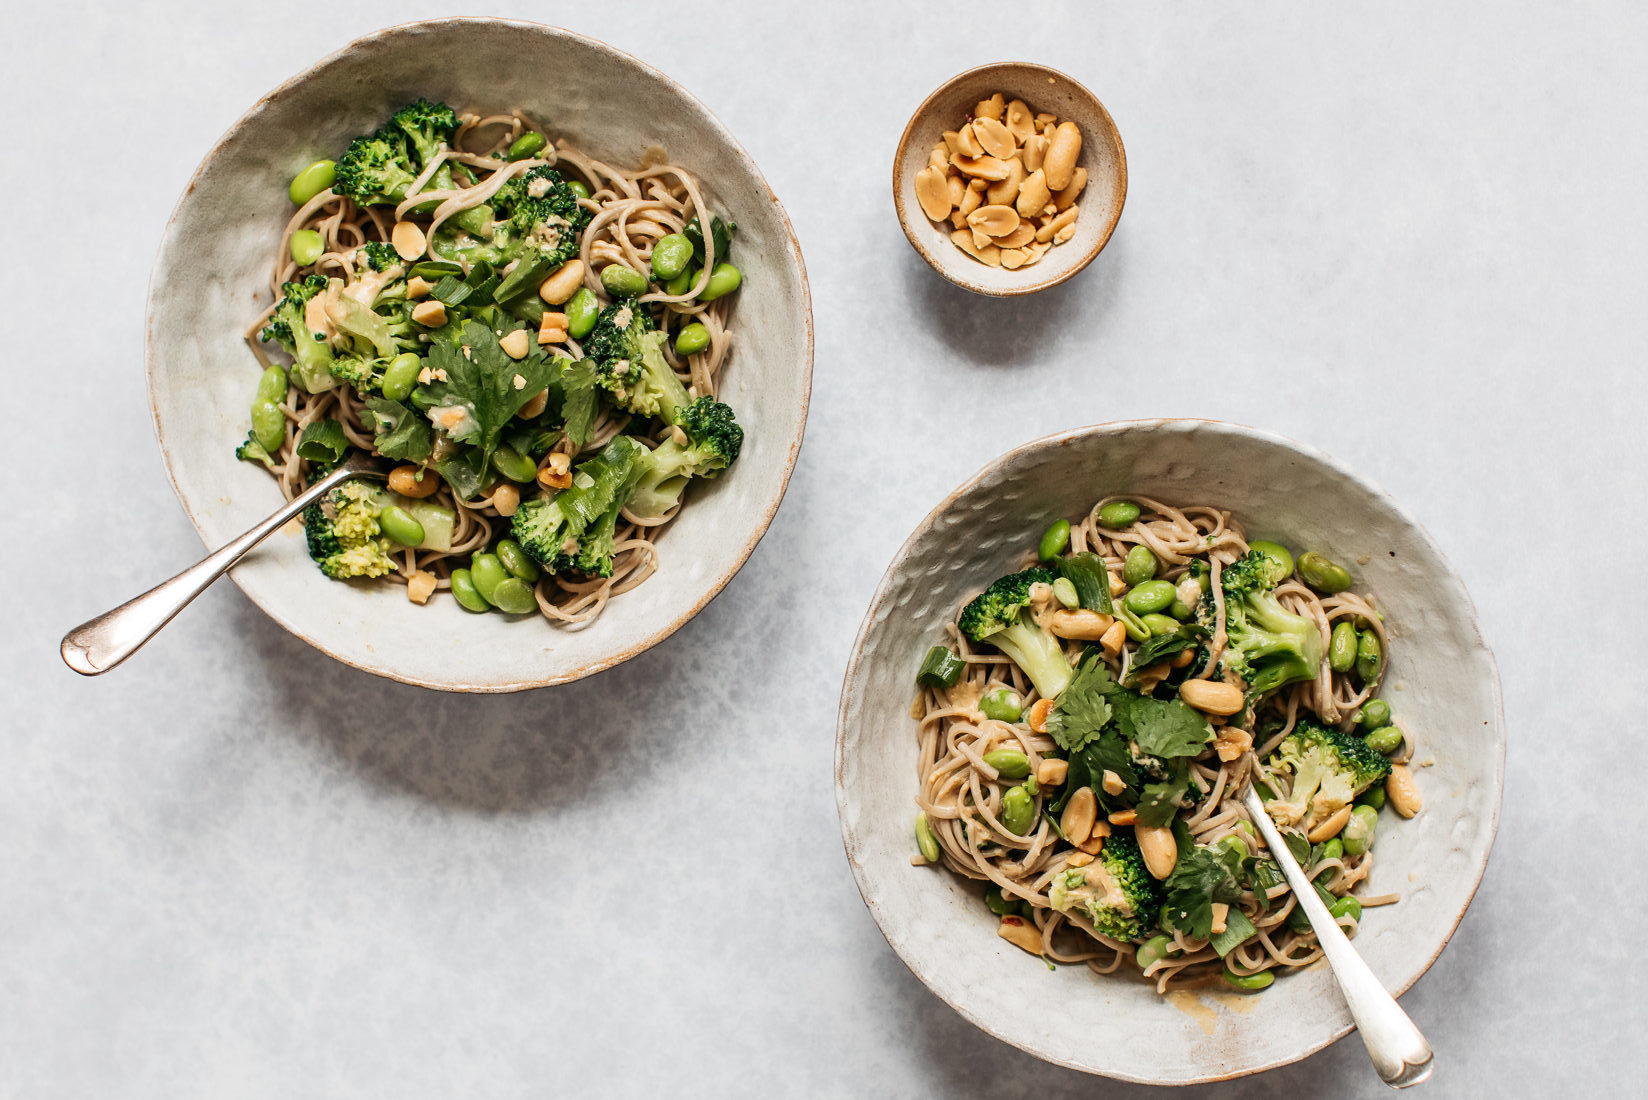 Low FODMAP and gluten free broccoli peanut soba noodle salad